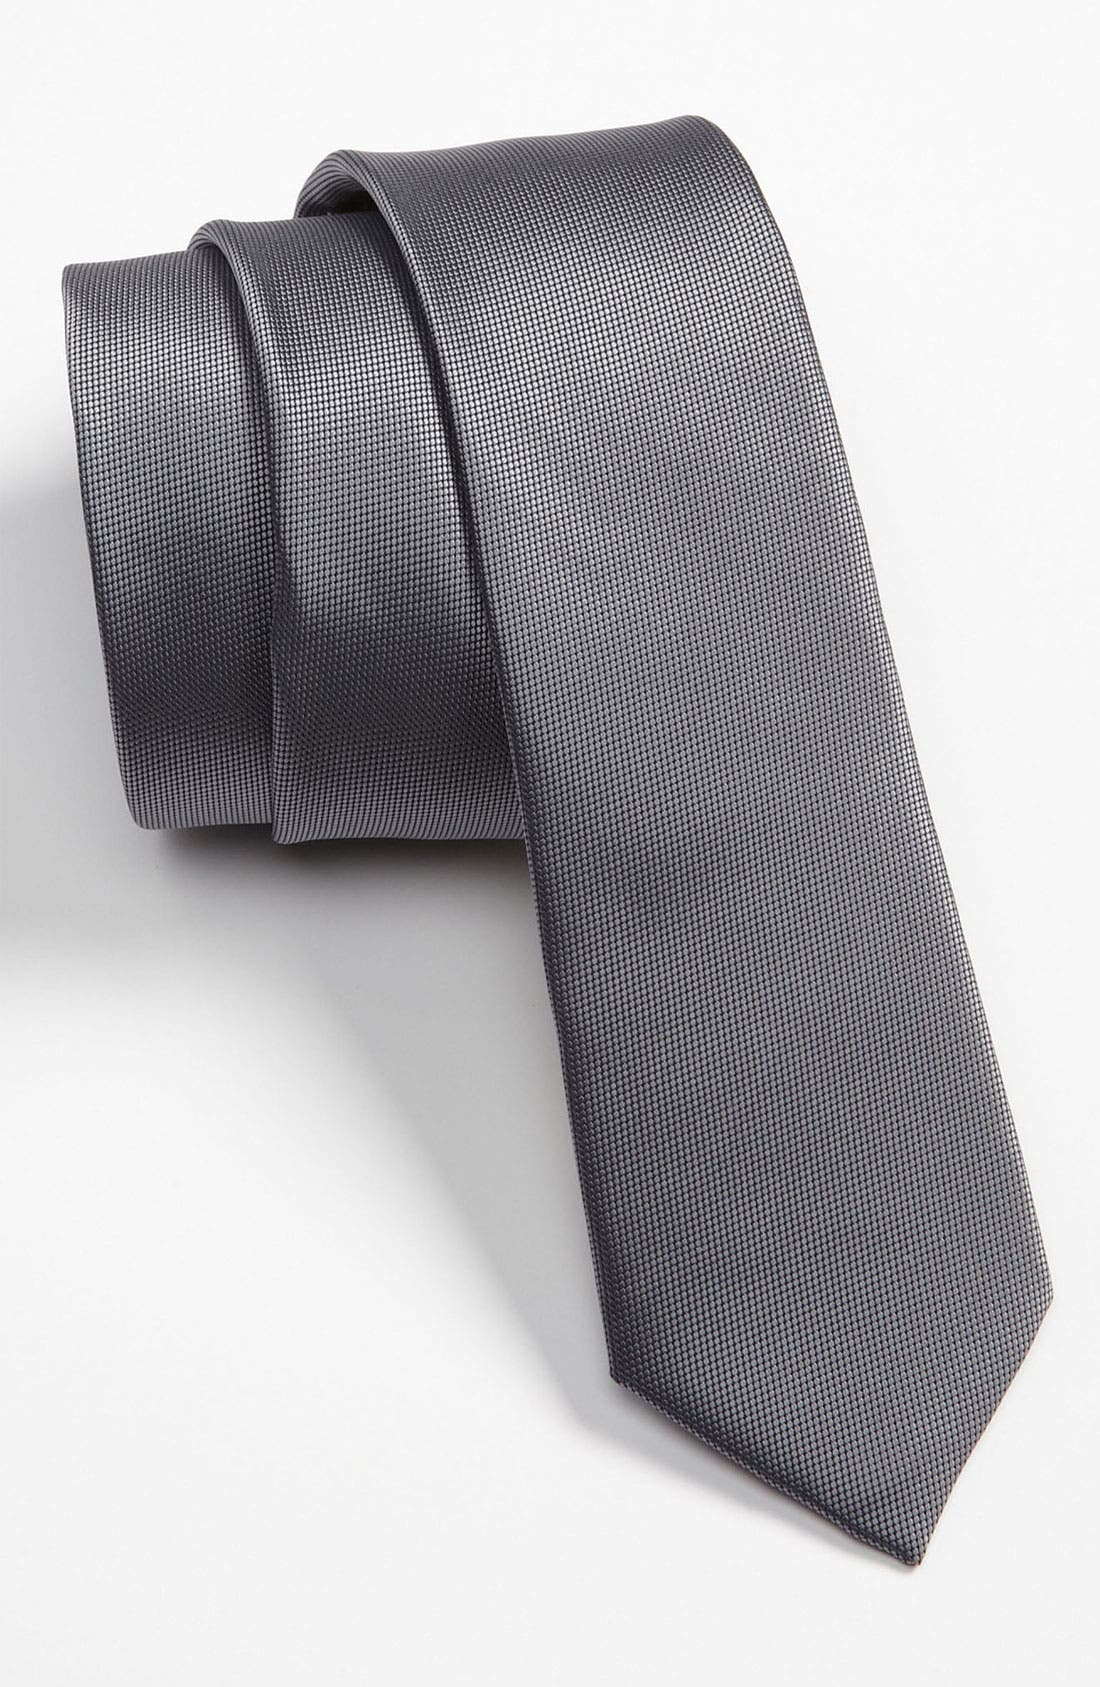 Main Image - Topman Narrow Textured Tie